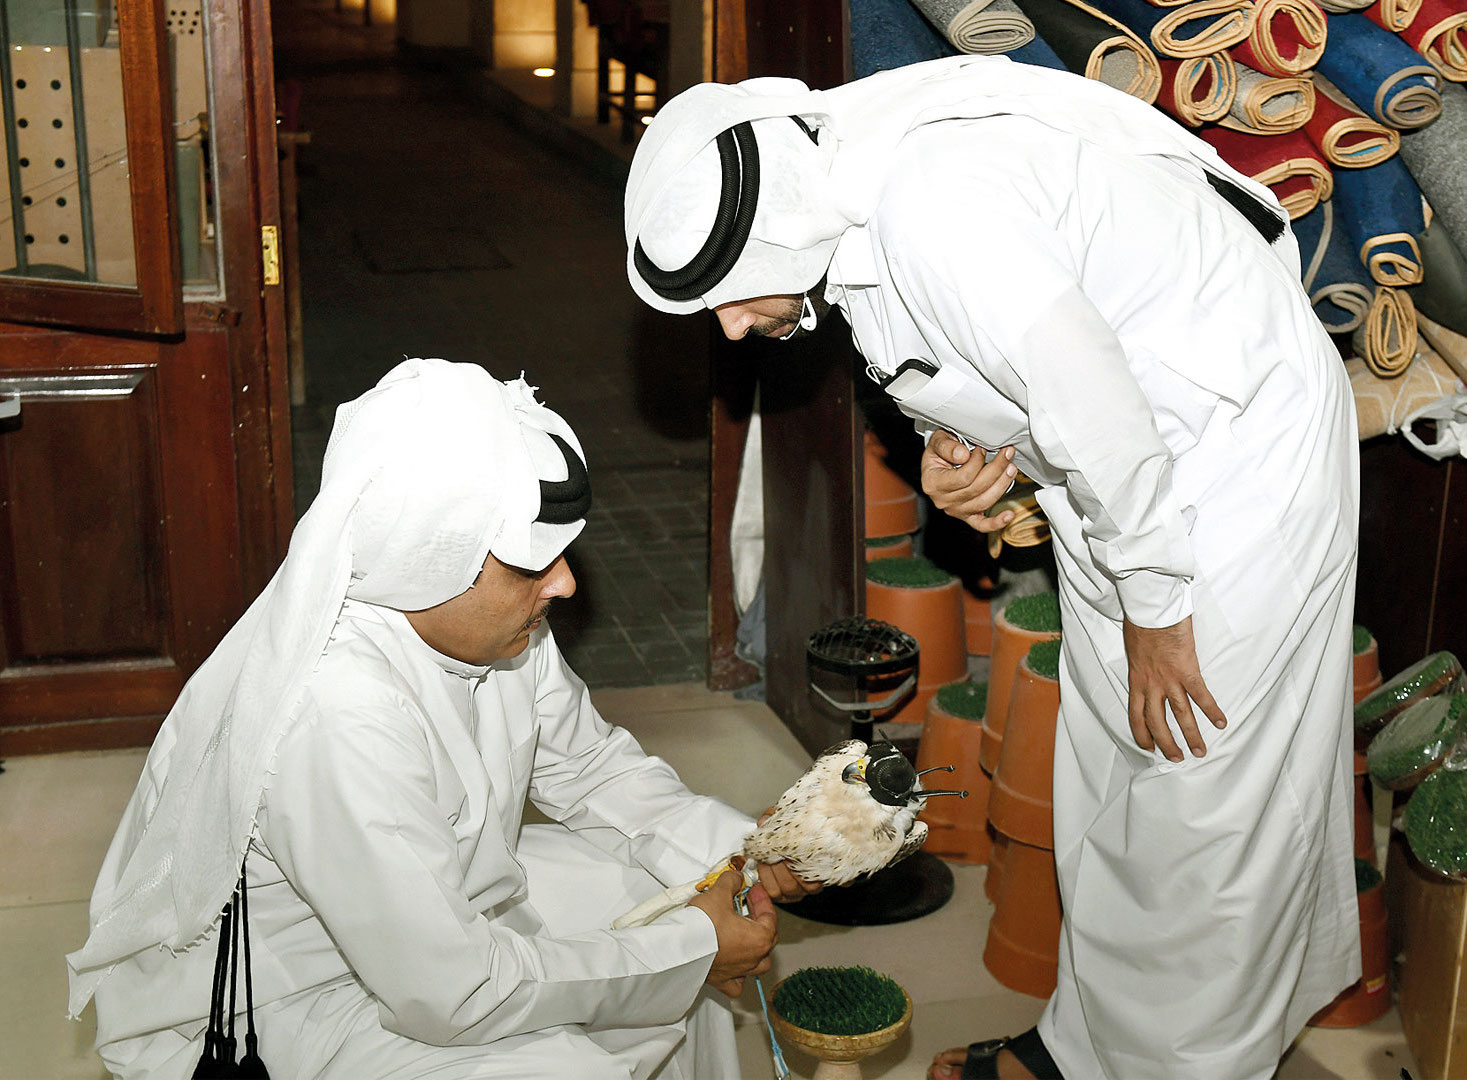 Falcons from different countries of the world in Souq Waqif